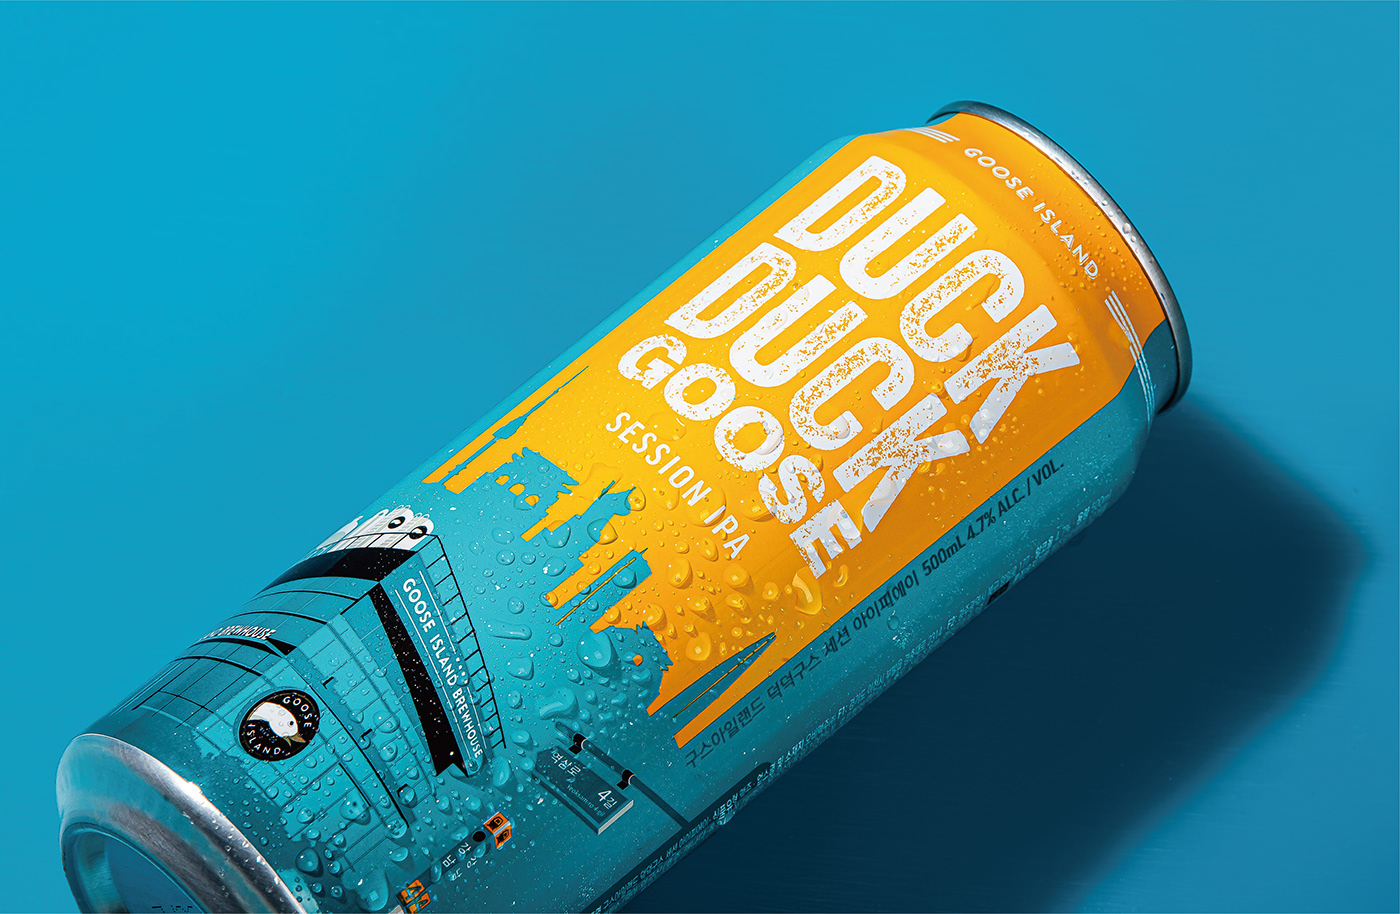 beer can design graphic industrial pakage Pakage Design product visual Photography